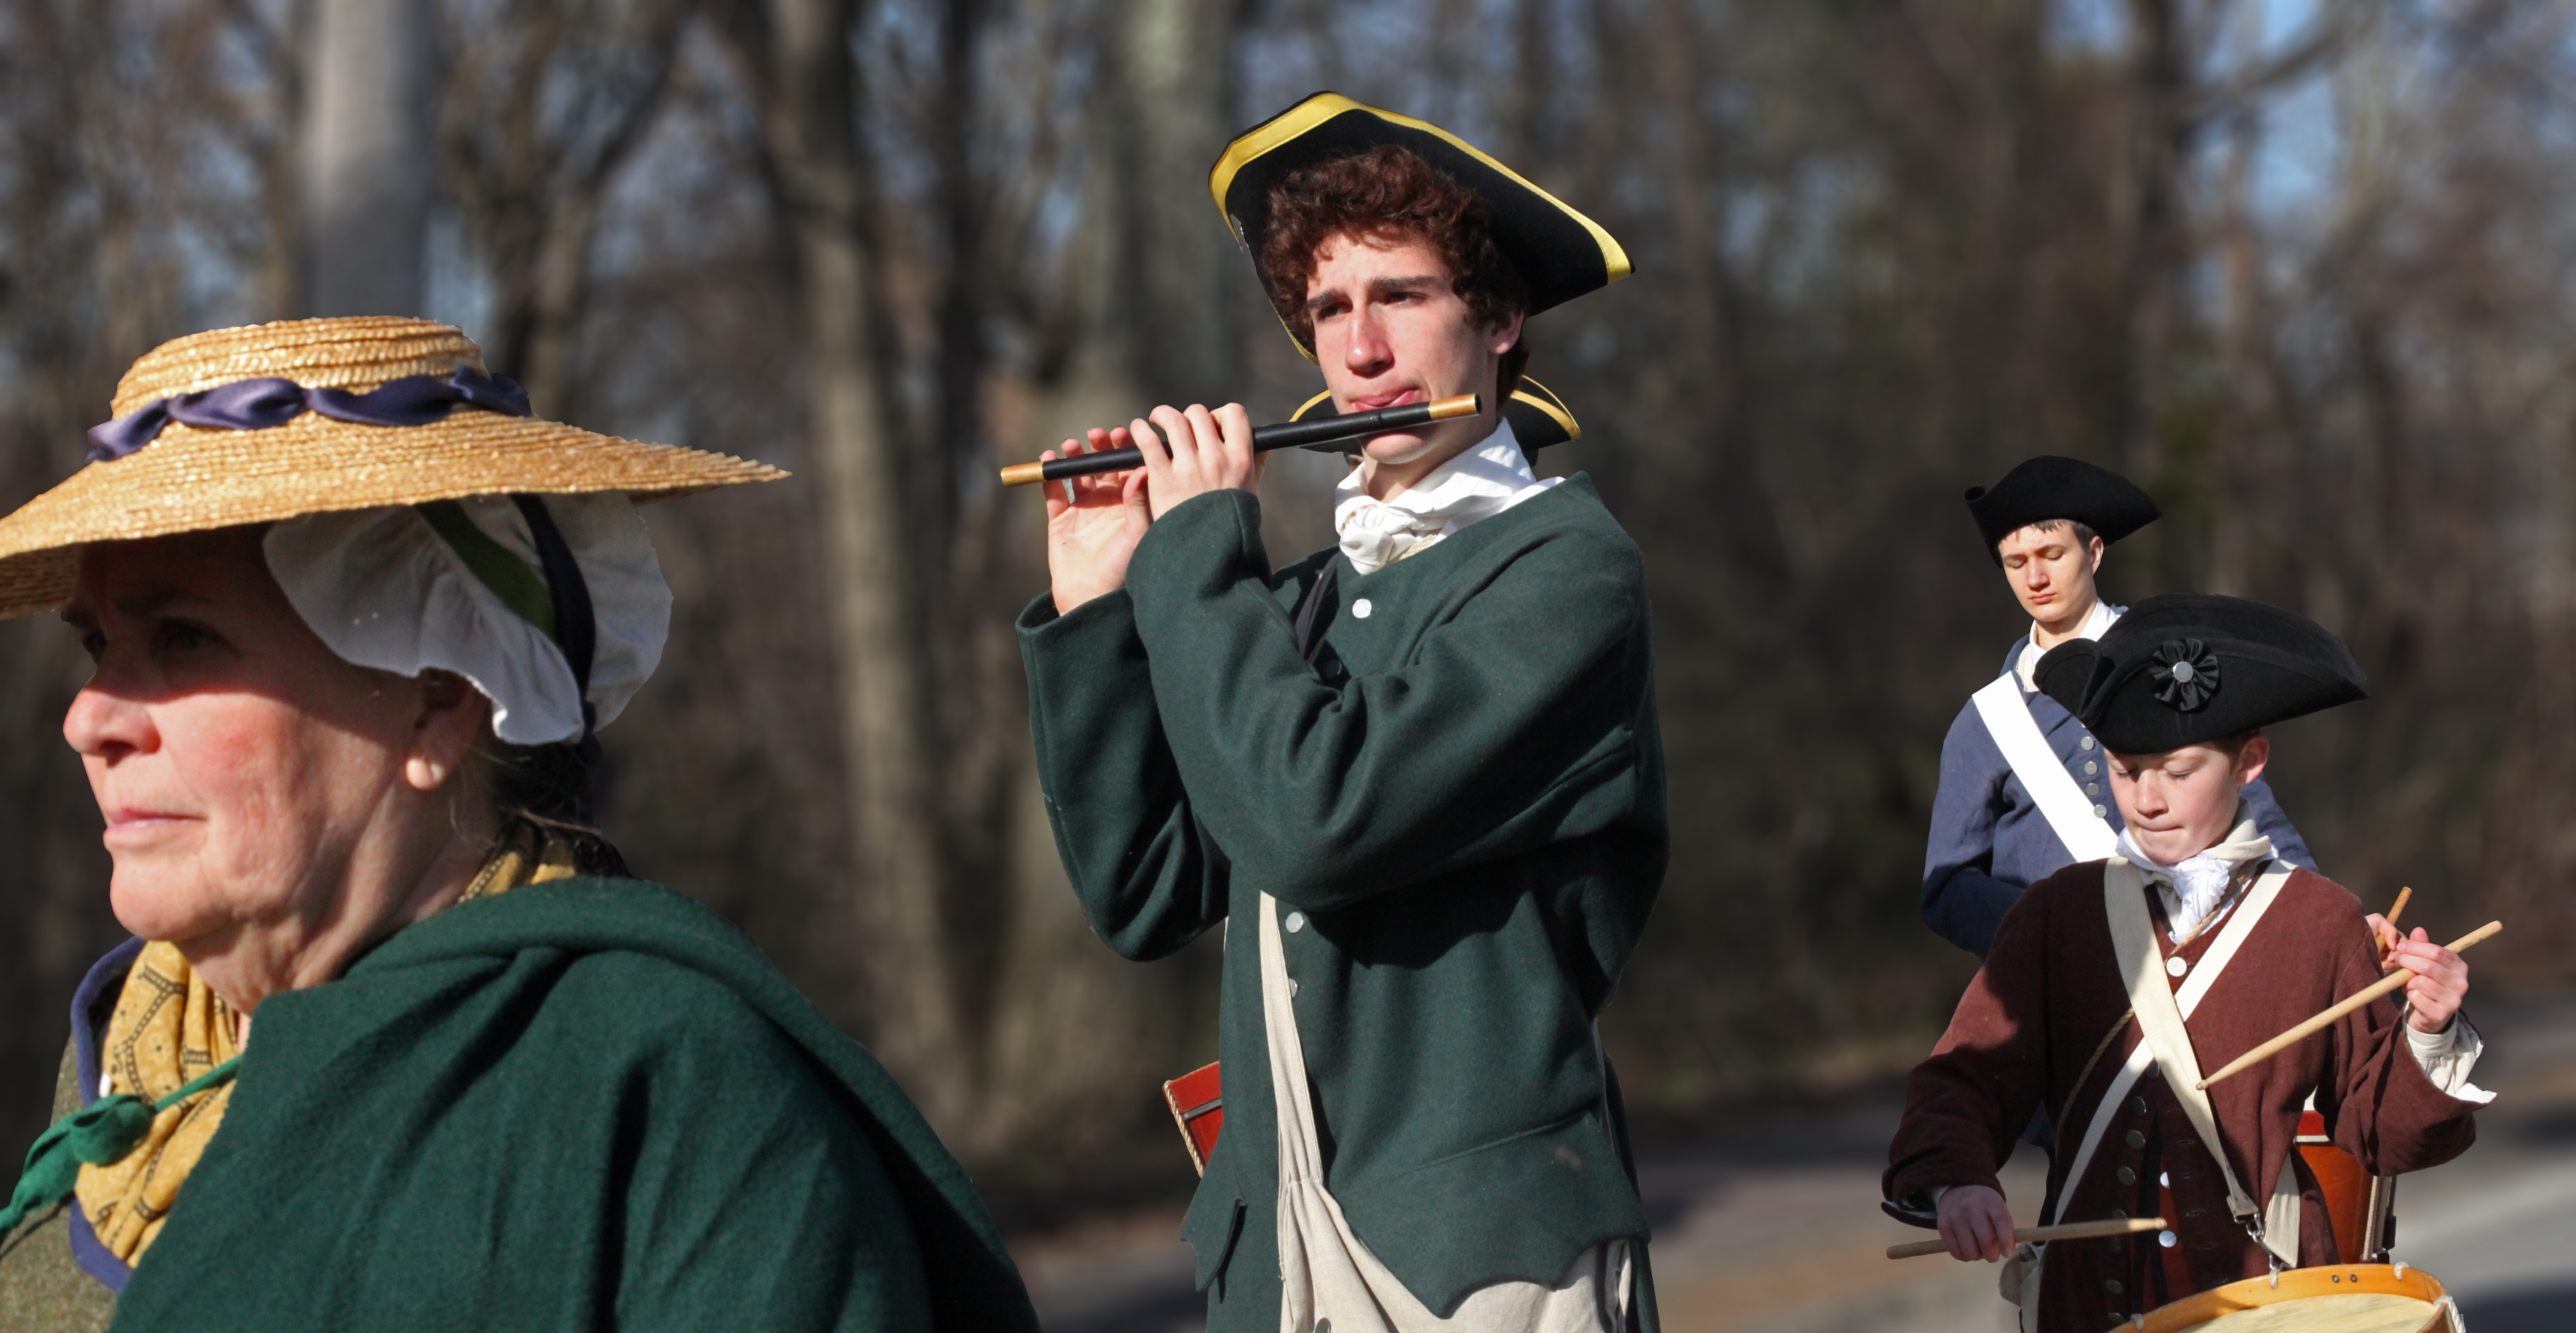 A citizen of Acton and Members of the Acton Fife and Drum Corps march to Concord on the Isaac Davis Trail during the 2016 annual Patriots' Day celebration.